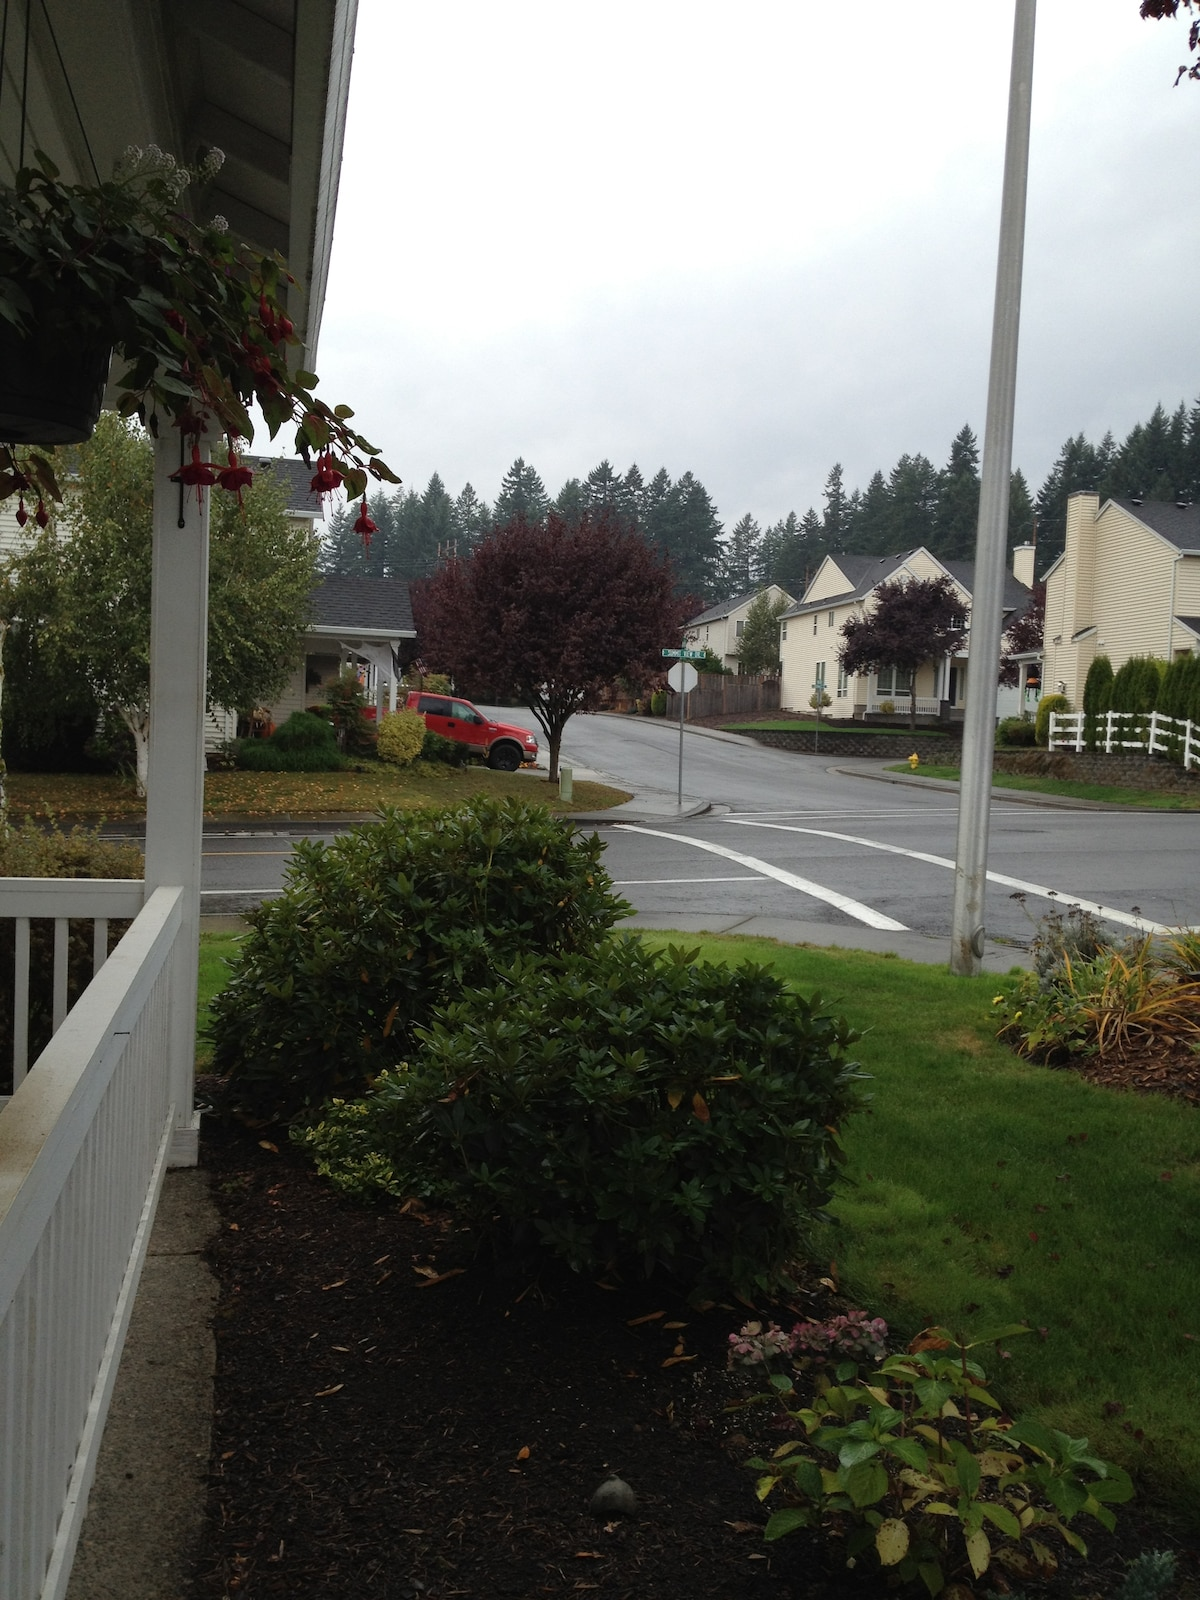 Looking into the neighborhood from front door